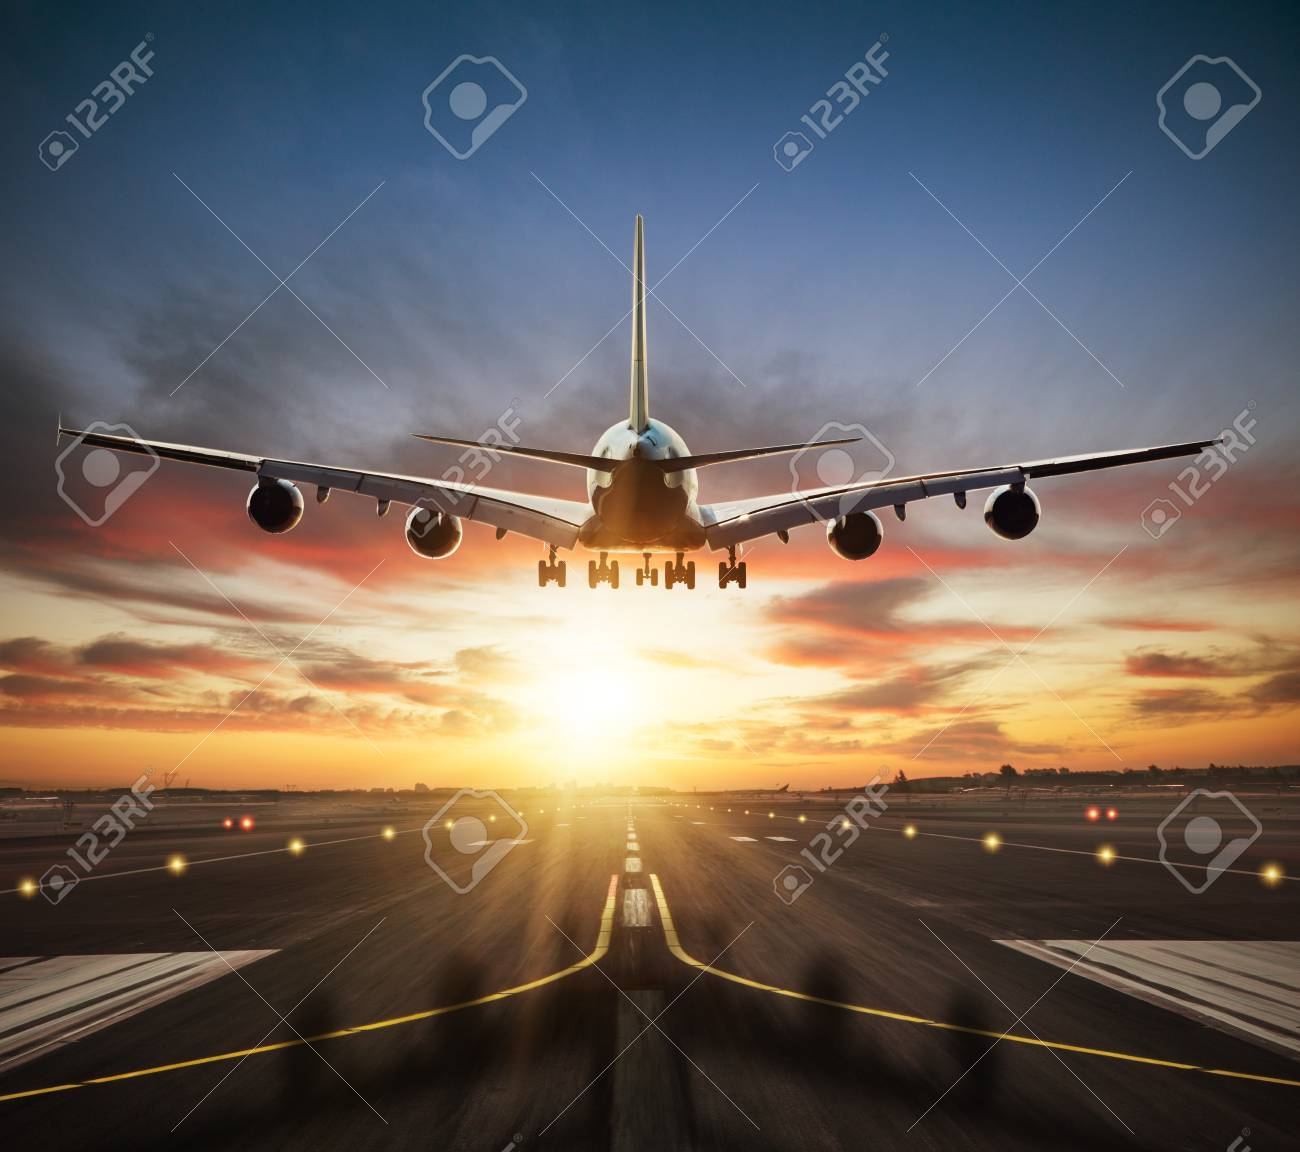 Huge two storeys commercial jetliner taking of runway. Modern and fastest mode of transportation. Dramatic sunset sky on background - 107412509